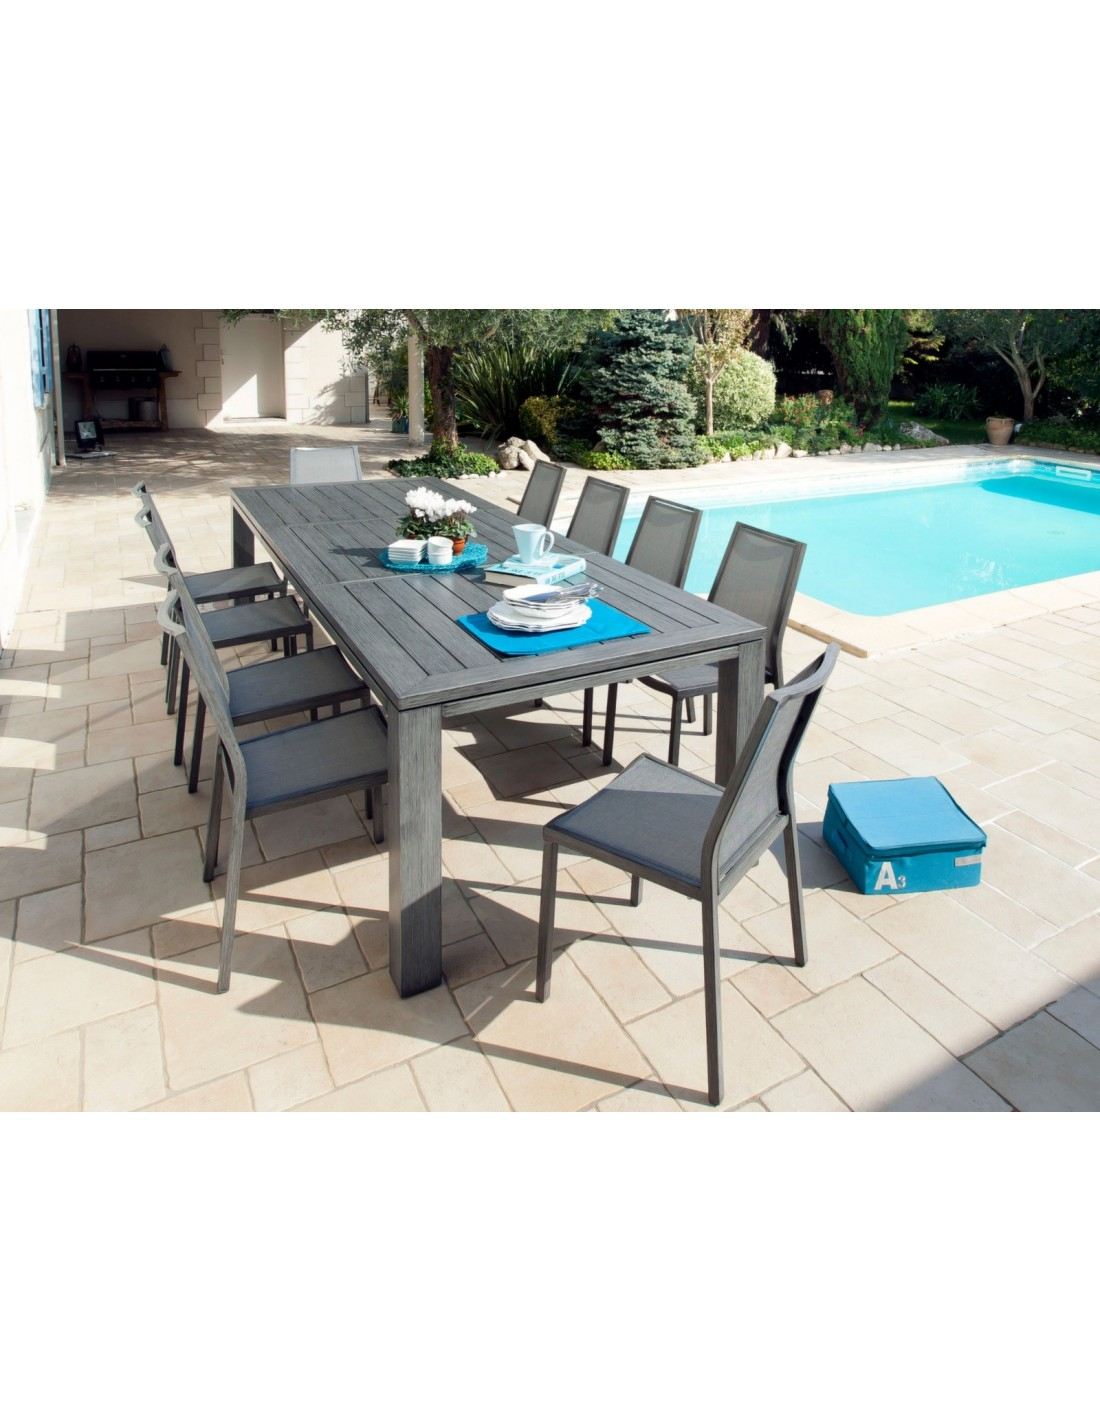 Table de jardin oceo | Spa amiens sonails